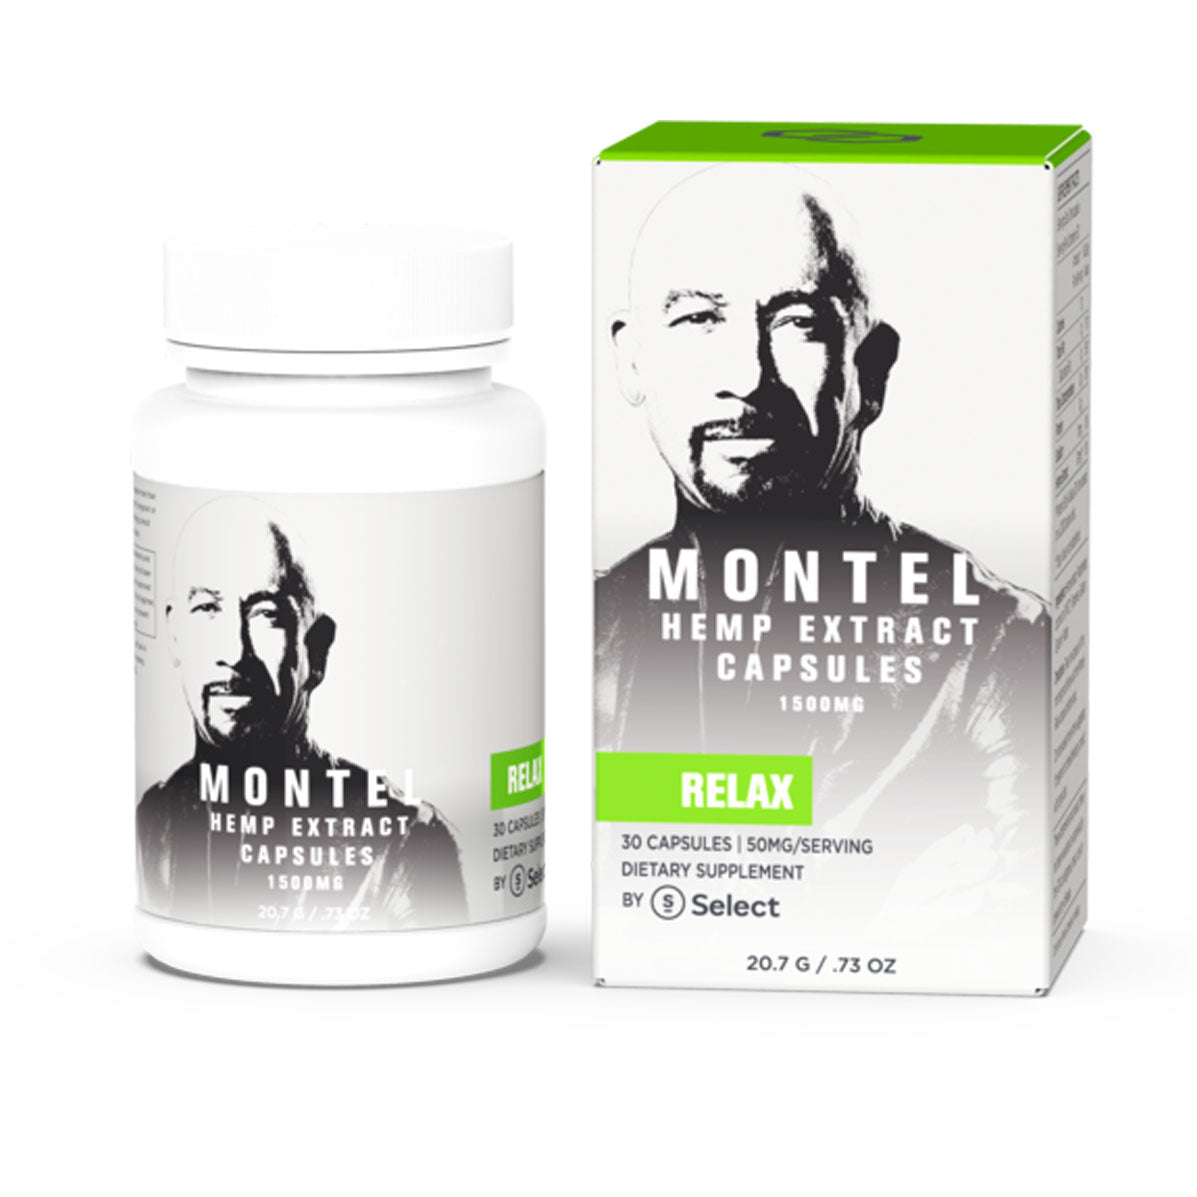 Montel by Select 1500mg Relax Capsules